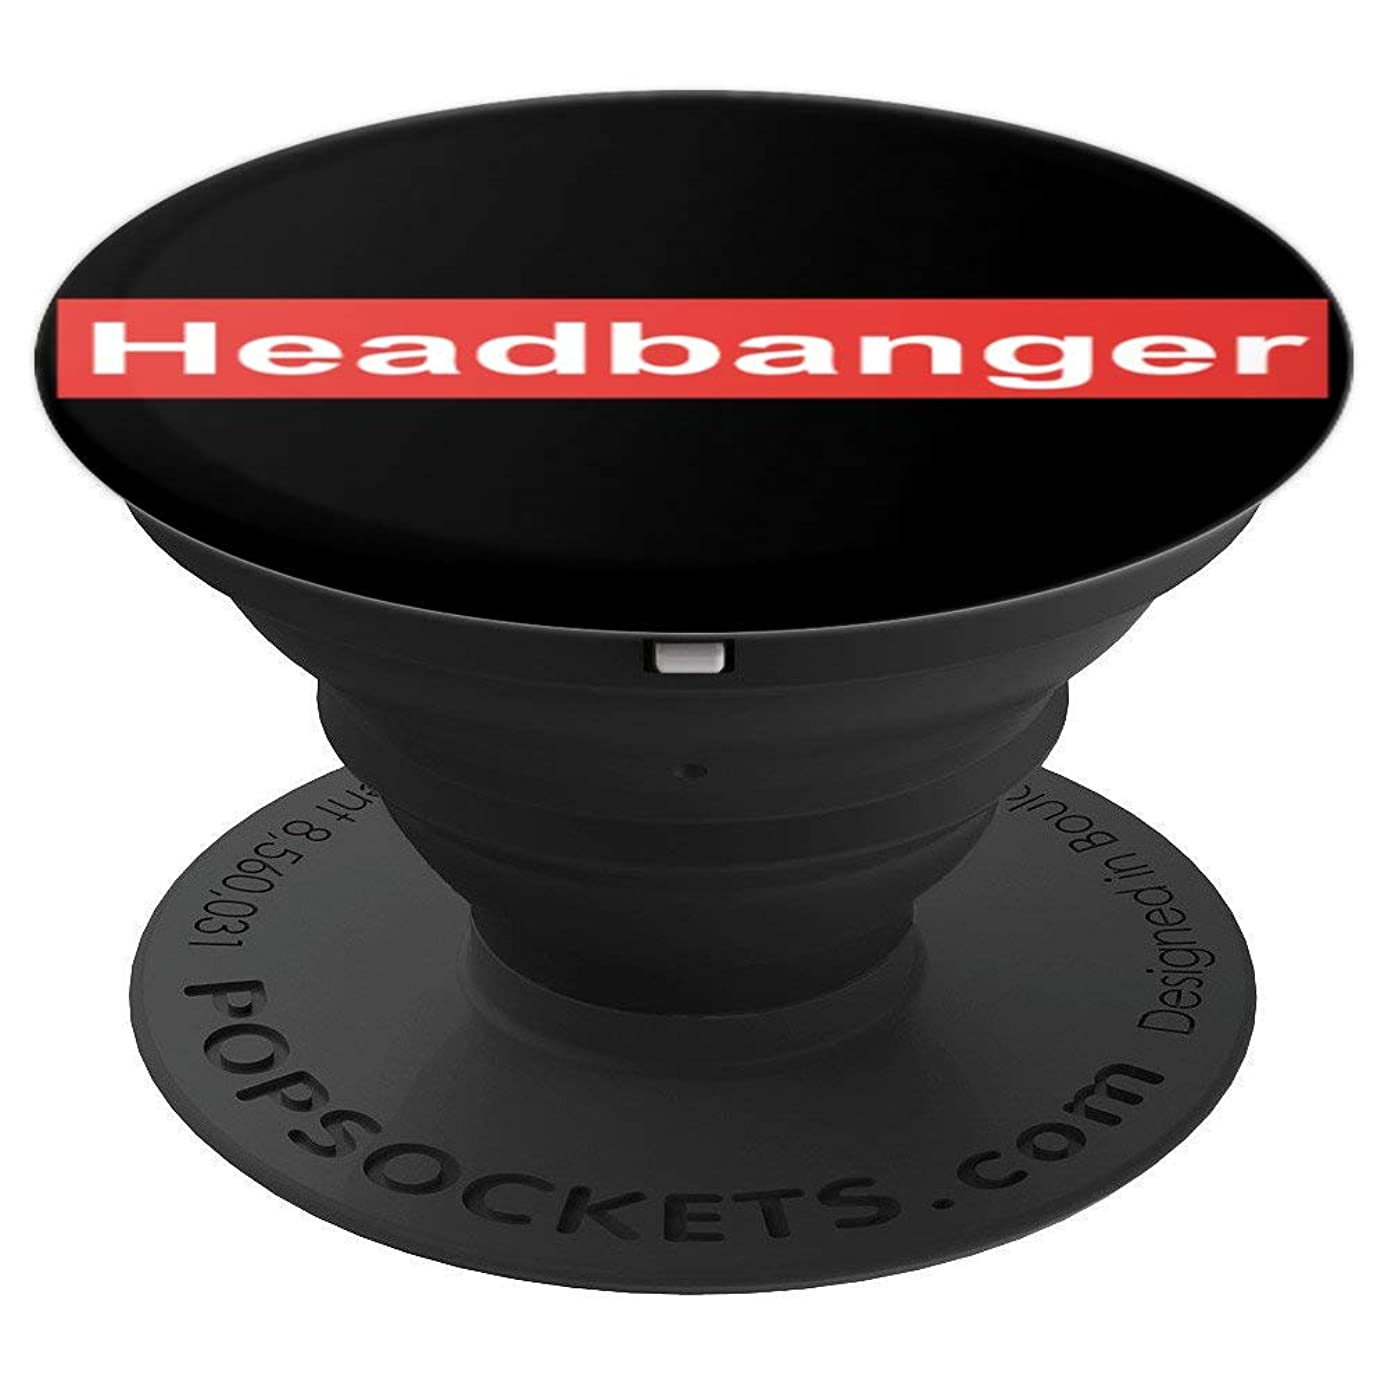 Headbanger Music Festival EDM Rave Men Women Gift - PopSockets Grip and Stand for Phones and Tablets